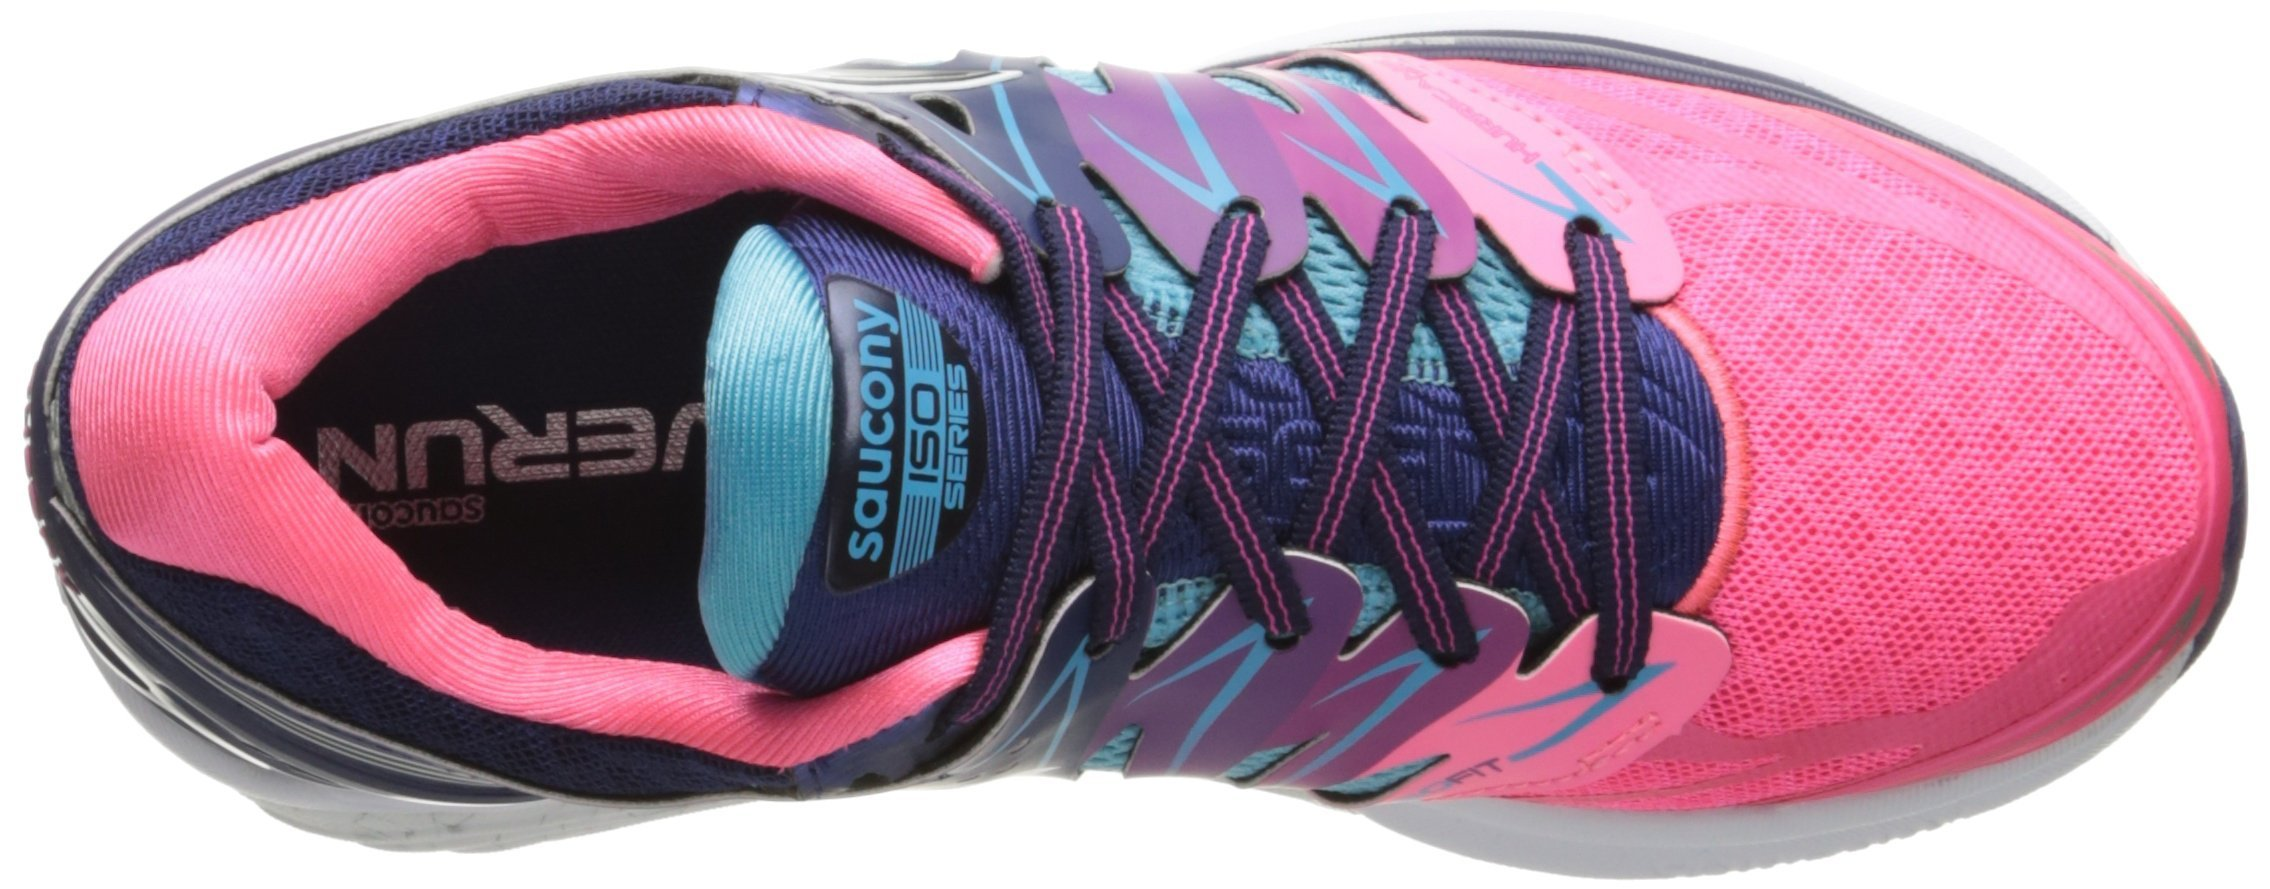 Saucony Women's Hurricane ISO 2 Running Shoe, Blue/Pink, 8 M US by Saucony (Image #6)